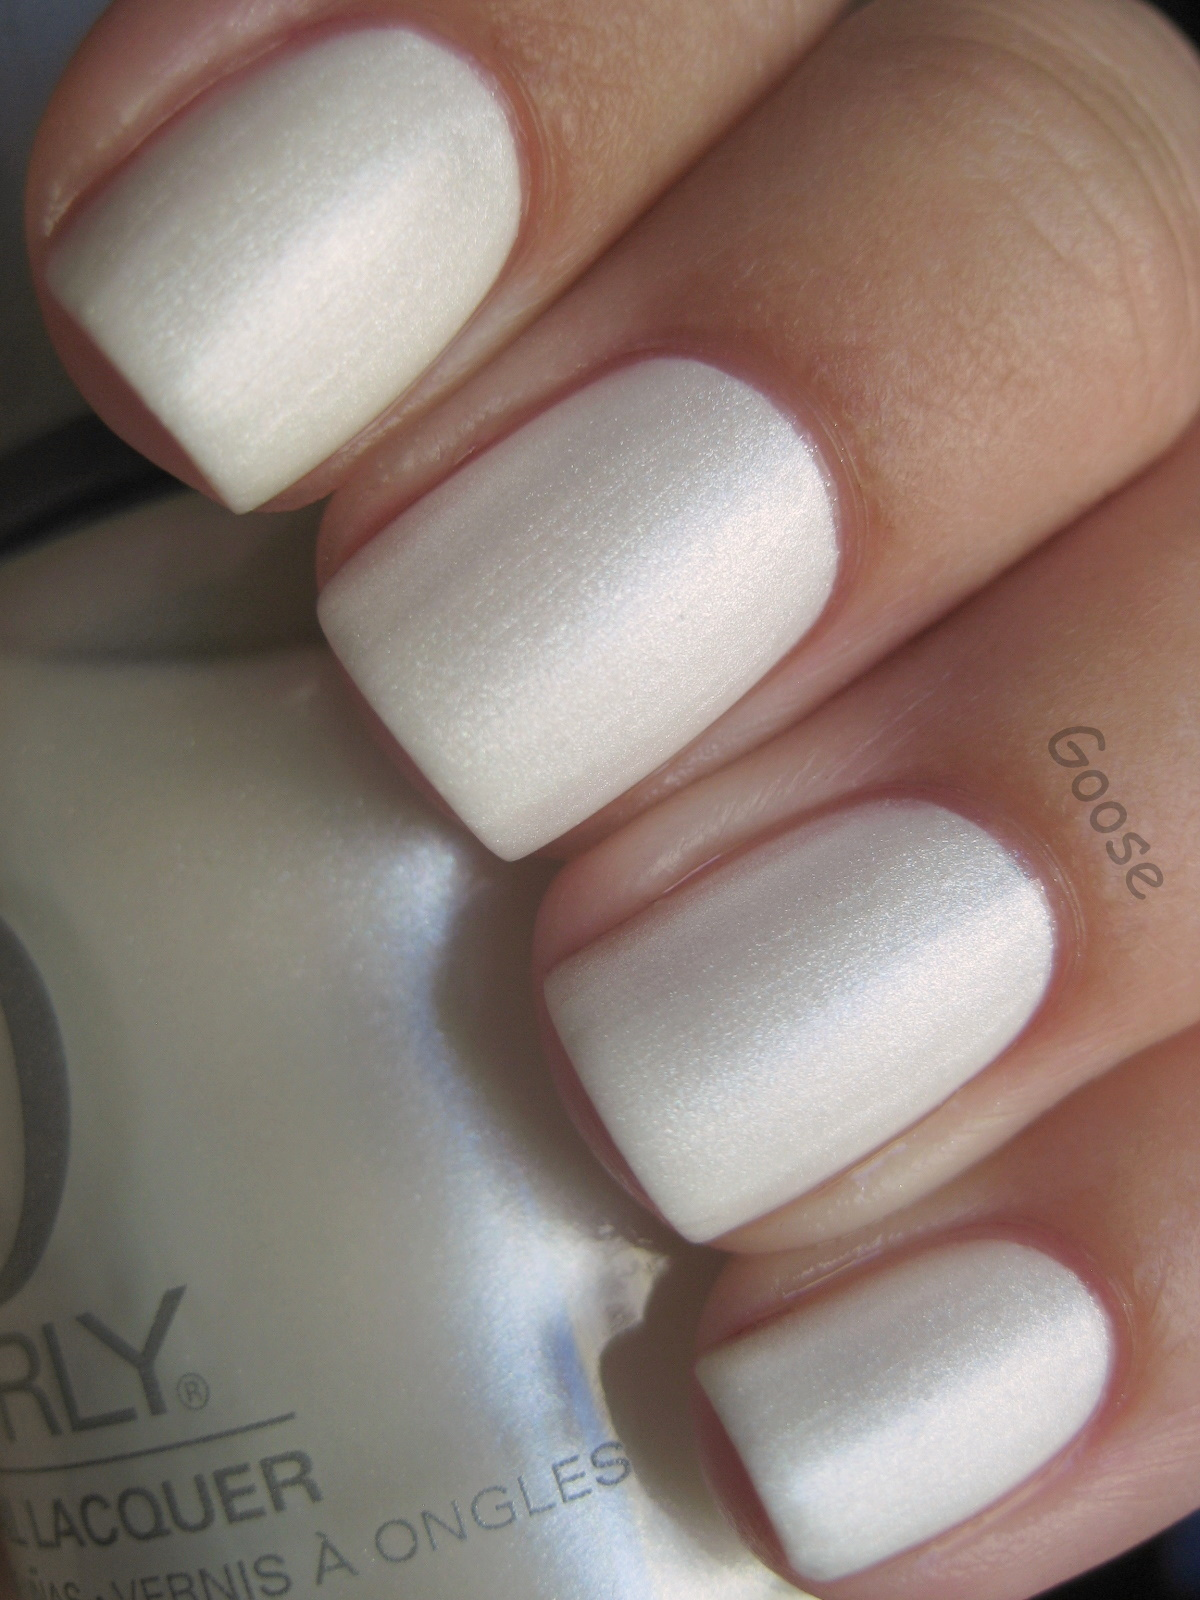 Goose S Glitter Orly Au Champagne And Little Bird